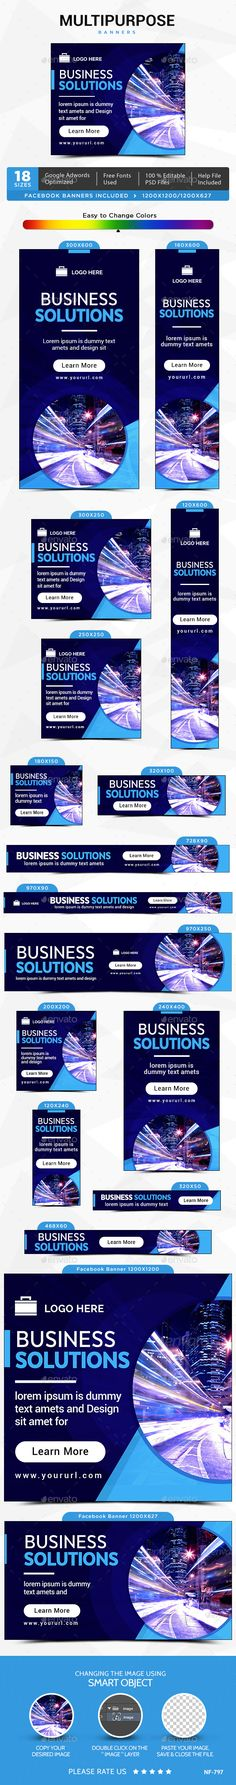 Multipurpose Banners — Photoshop PSD #google adwords #multipurpose • Available here → https://graphicriver.net/item/multipurpose-banners/13541594?ref=pxcr